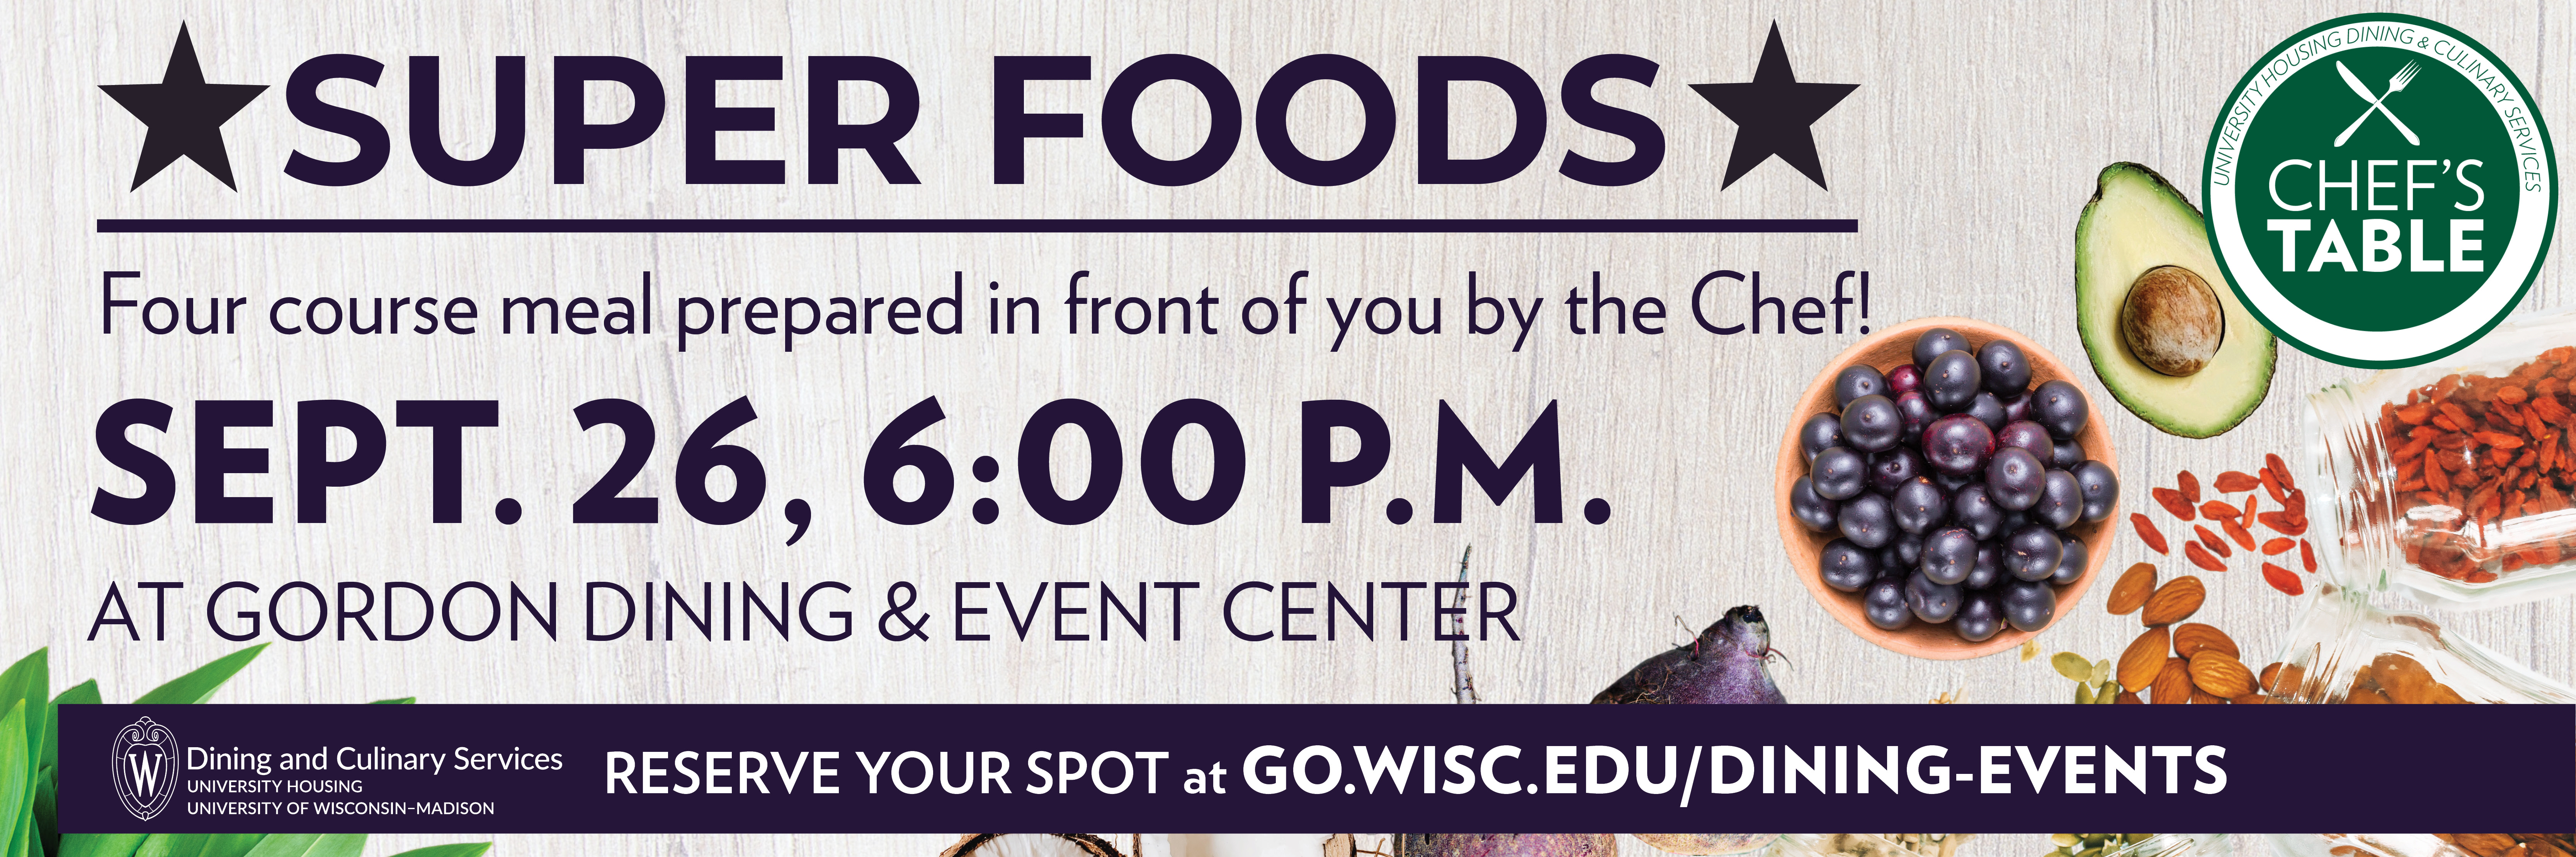 Chef's Table Event: Super Foods, Sept, 26 at 6 PM at Gordon Dining & Center Center, $12.95 per person